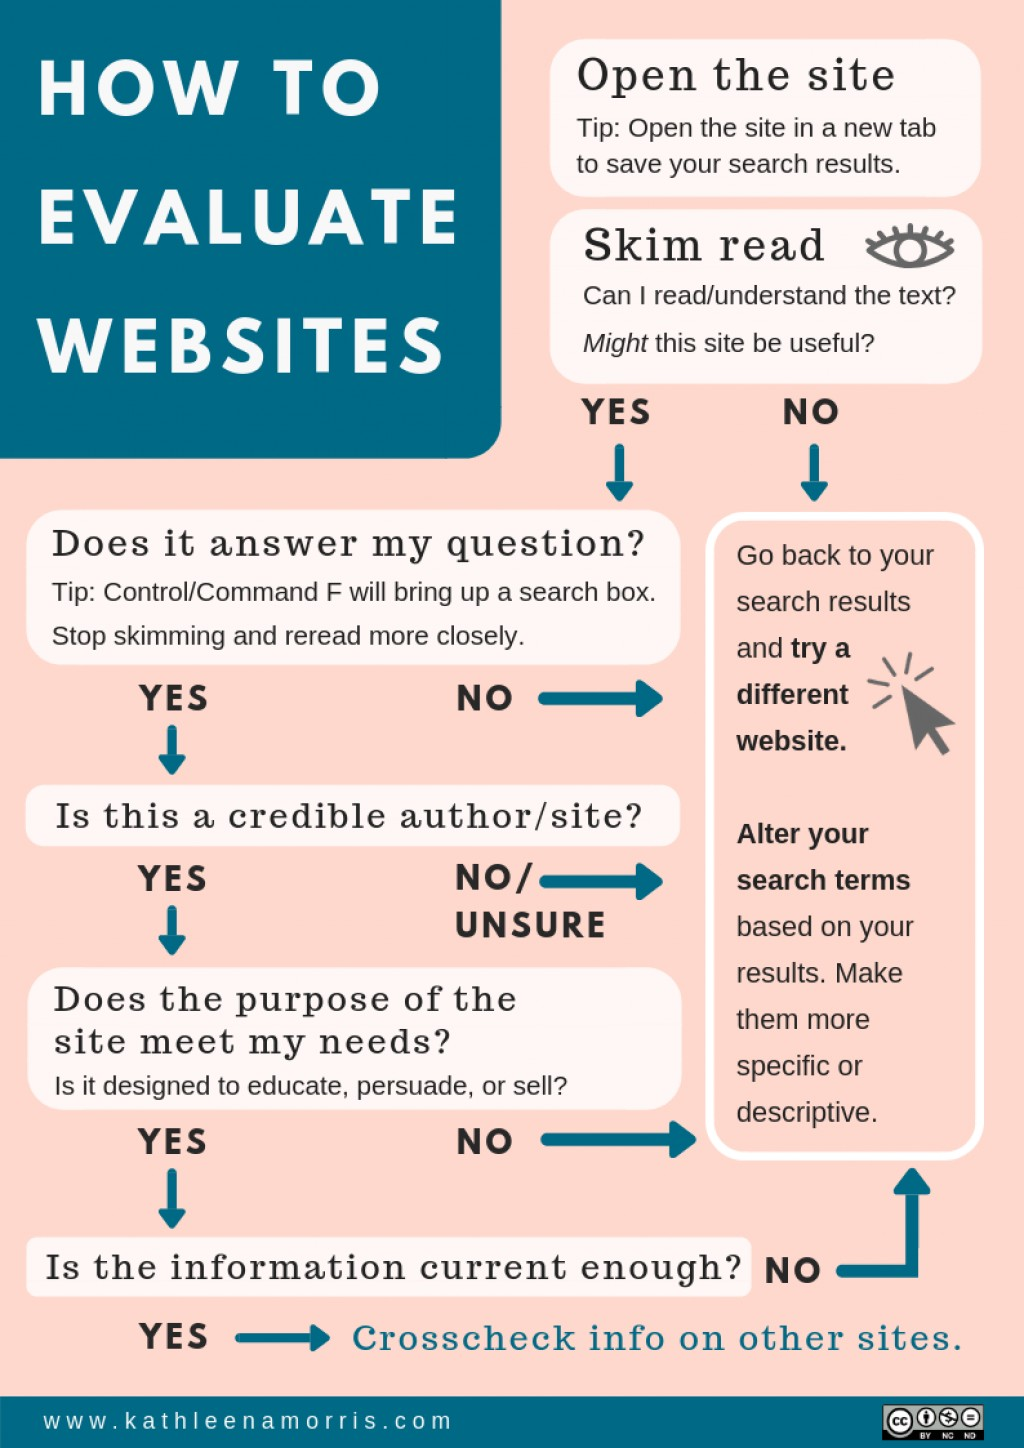 019 Research Paper Flowchart How To Evaluate Websites Kathleen Morris Vx3iho Credible For Best Papers Large